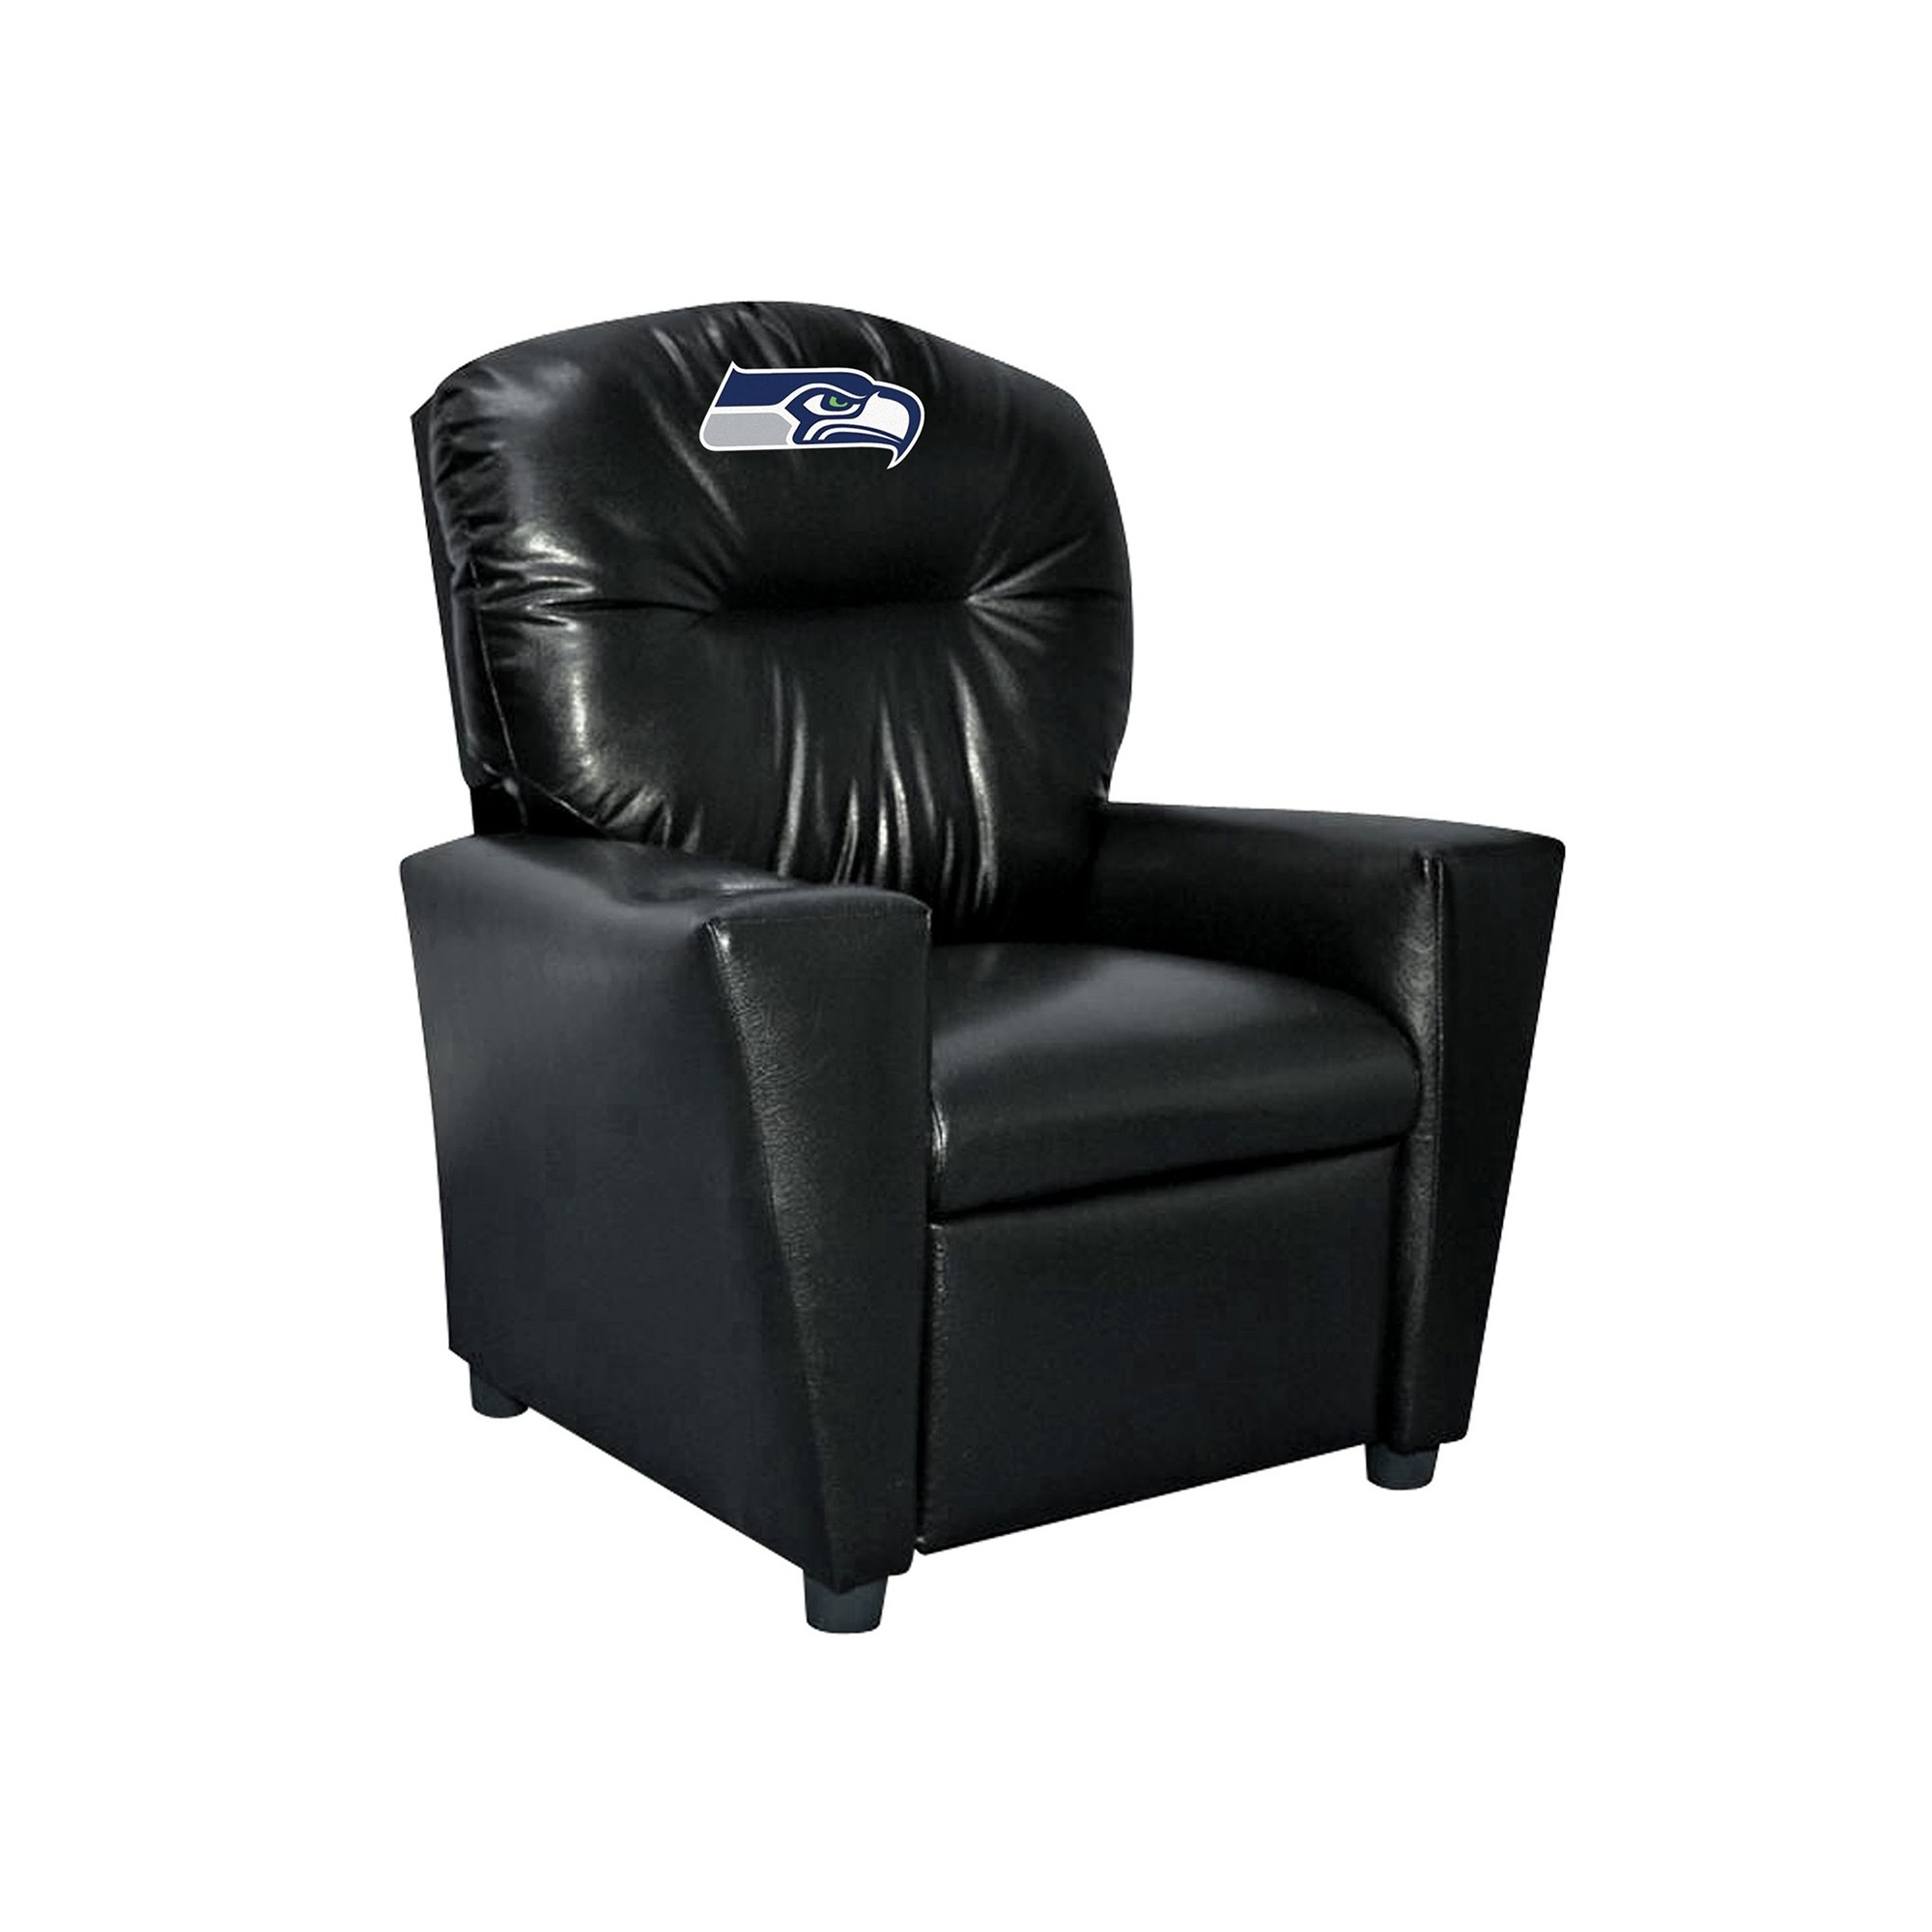 Seattle Seahawks Kids Faux Leather Recliner - 107-1024 - Football Nfl Football Seattle Seahawks Kids Dish Sets 107-1024